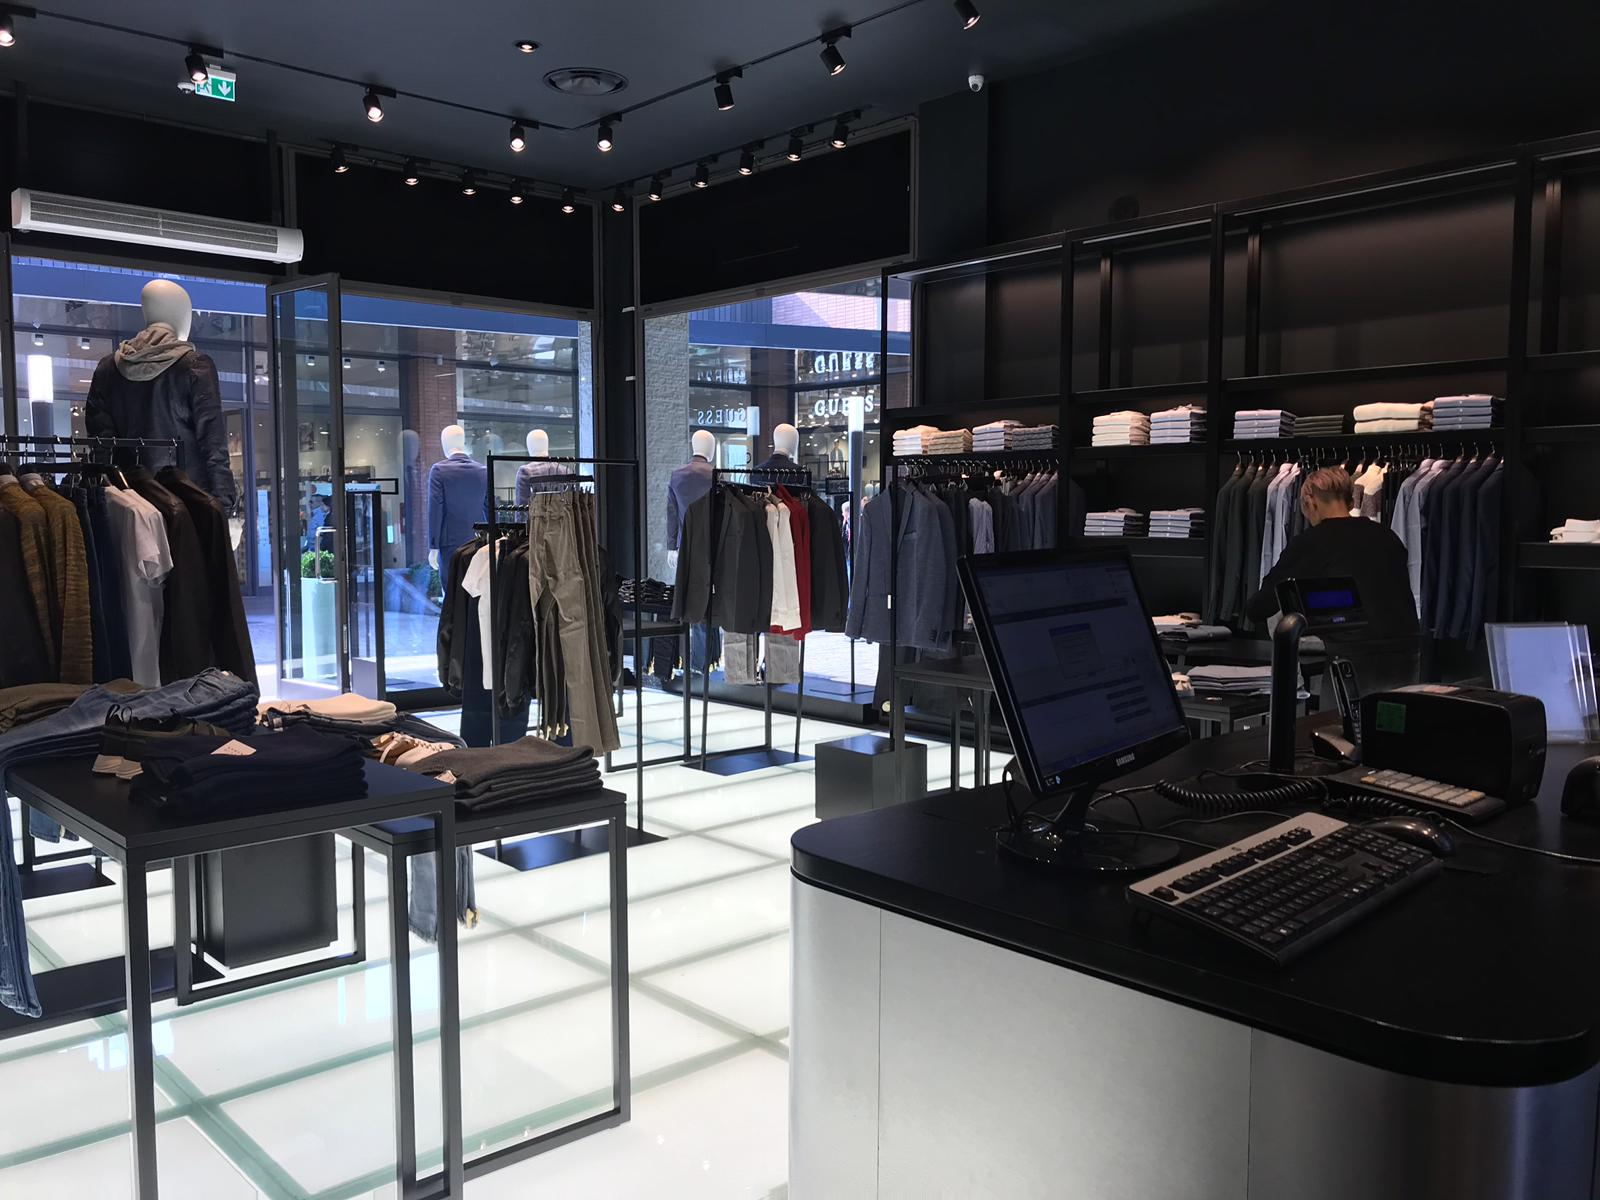 Arredamento showroom david naman roma e vicolungo co de for Outlet arredamento roma